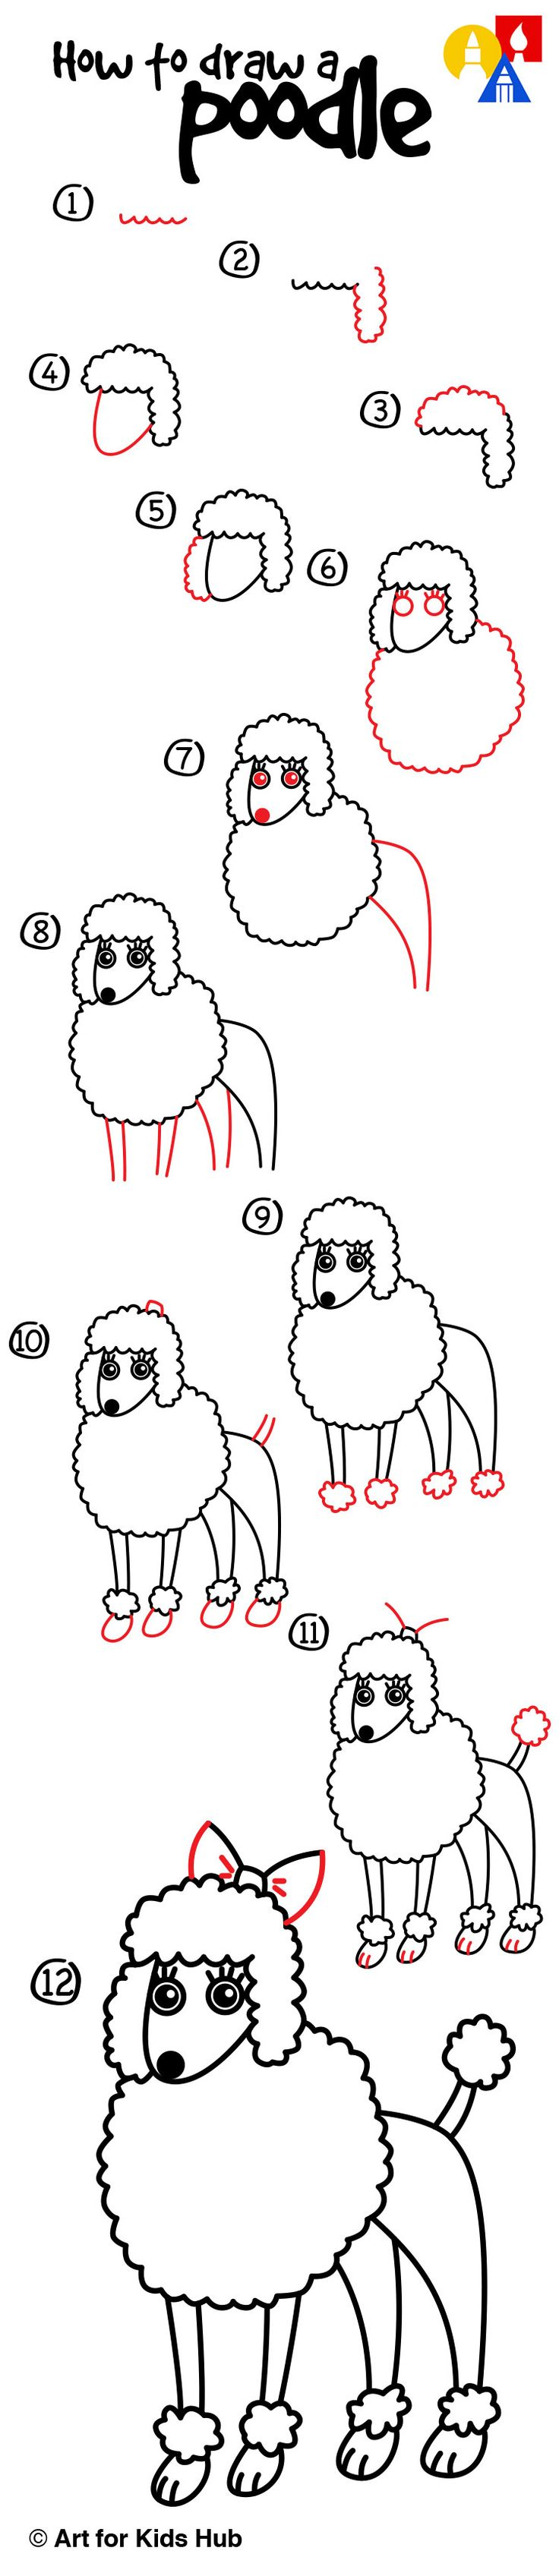 How to draw a poodle art for kids hub pinterest poodle draw how to draw a super cute poodle thecheapjerseys Images